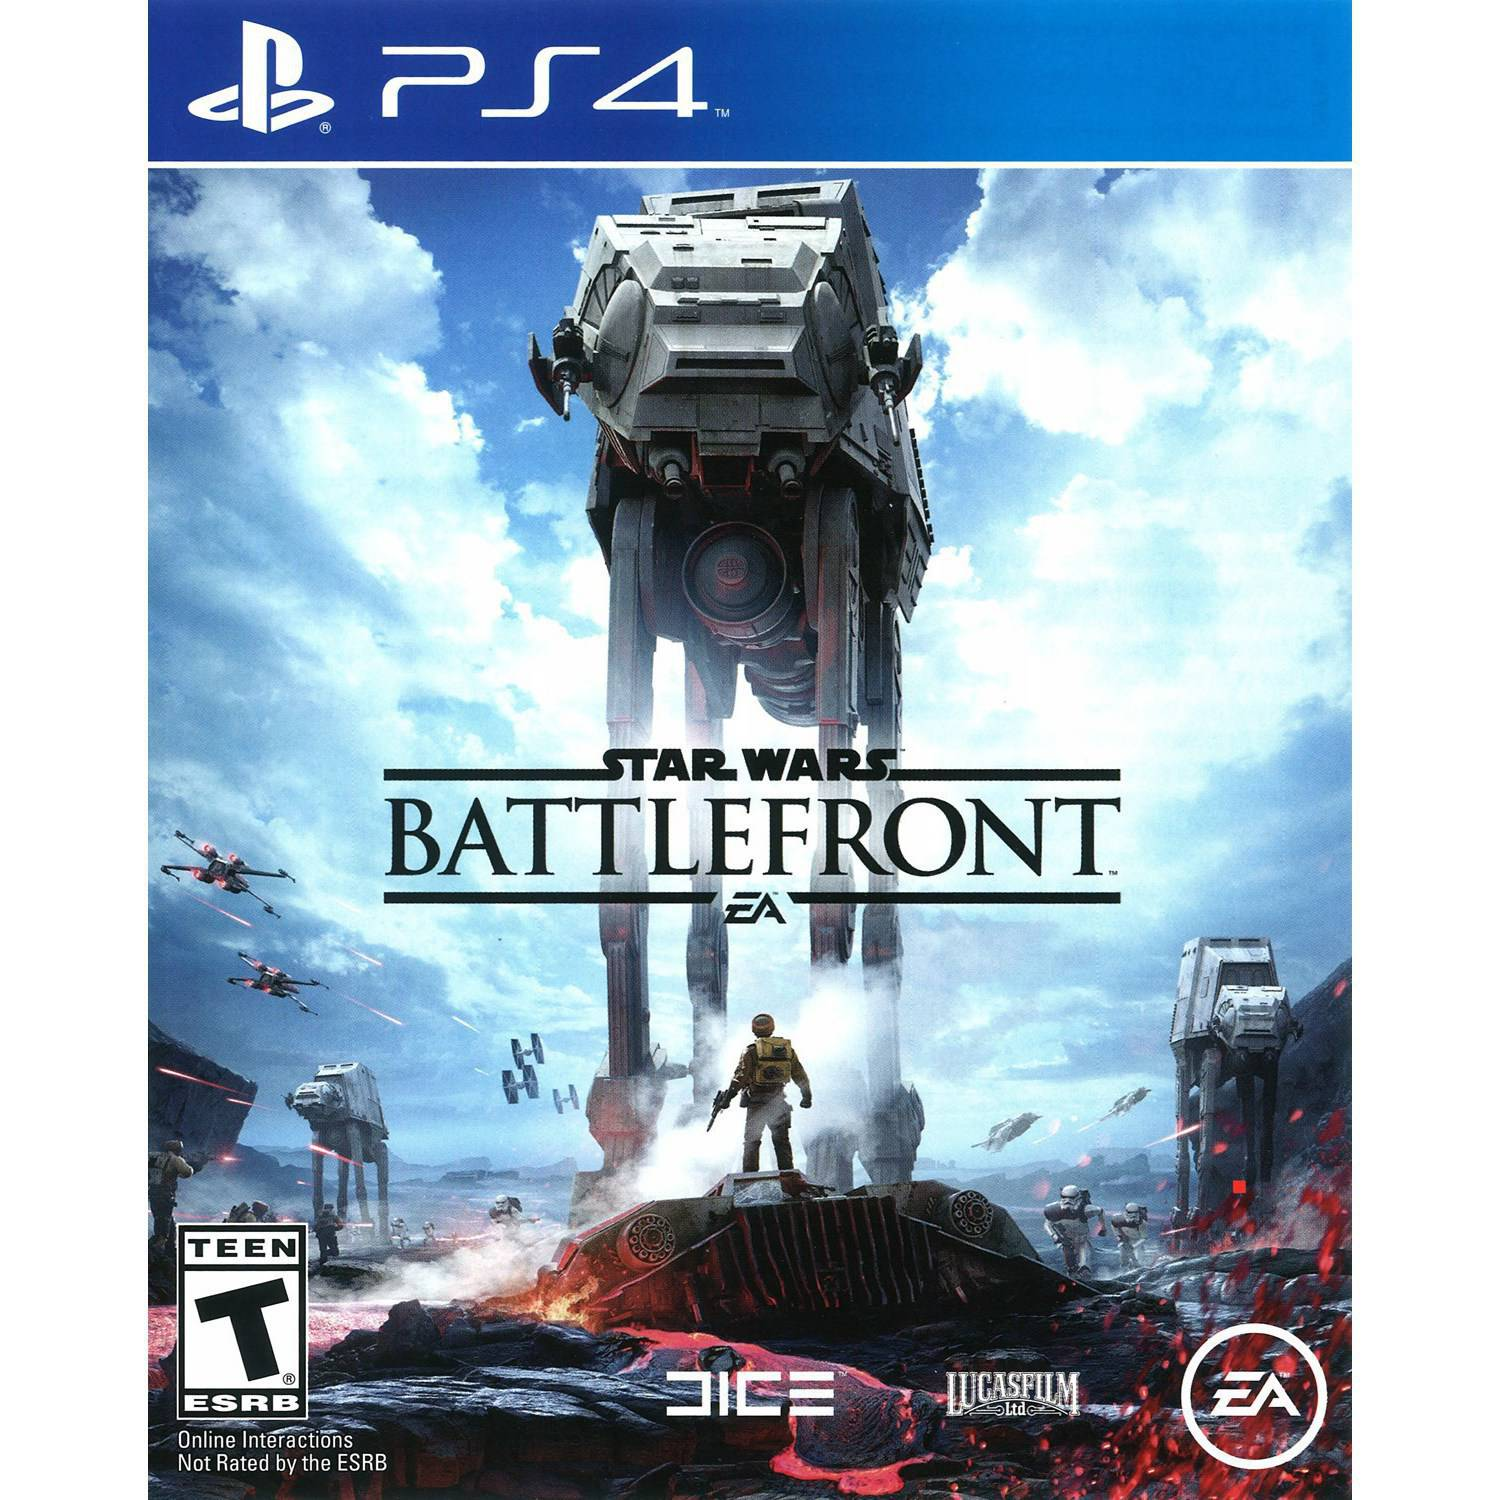 Star Wars Battlefront for PlayStation 4